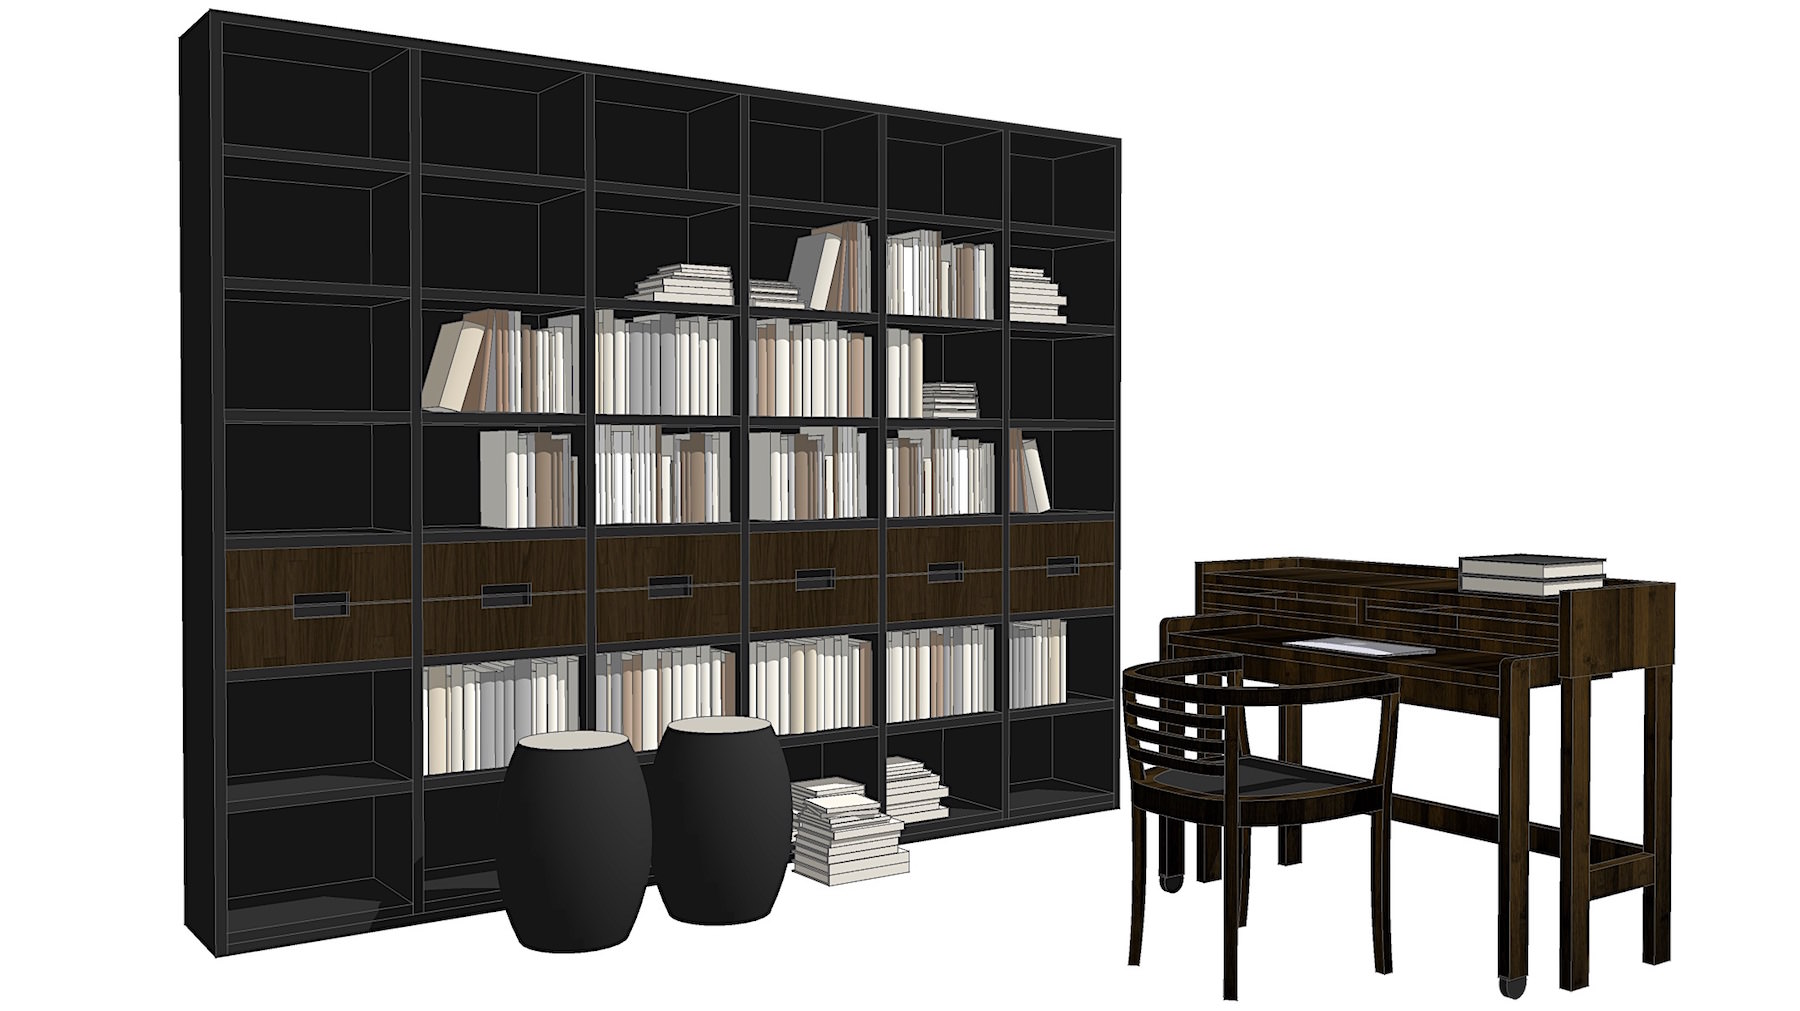 SketchUp 3D book shelves